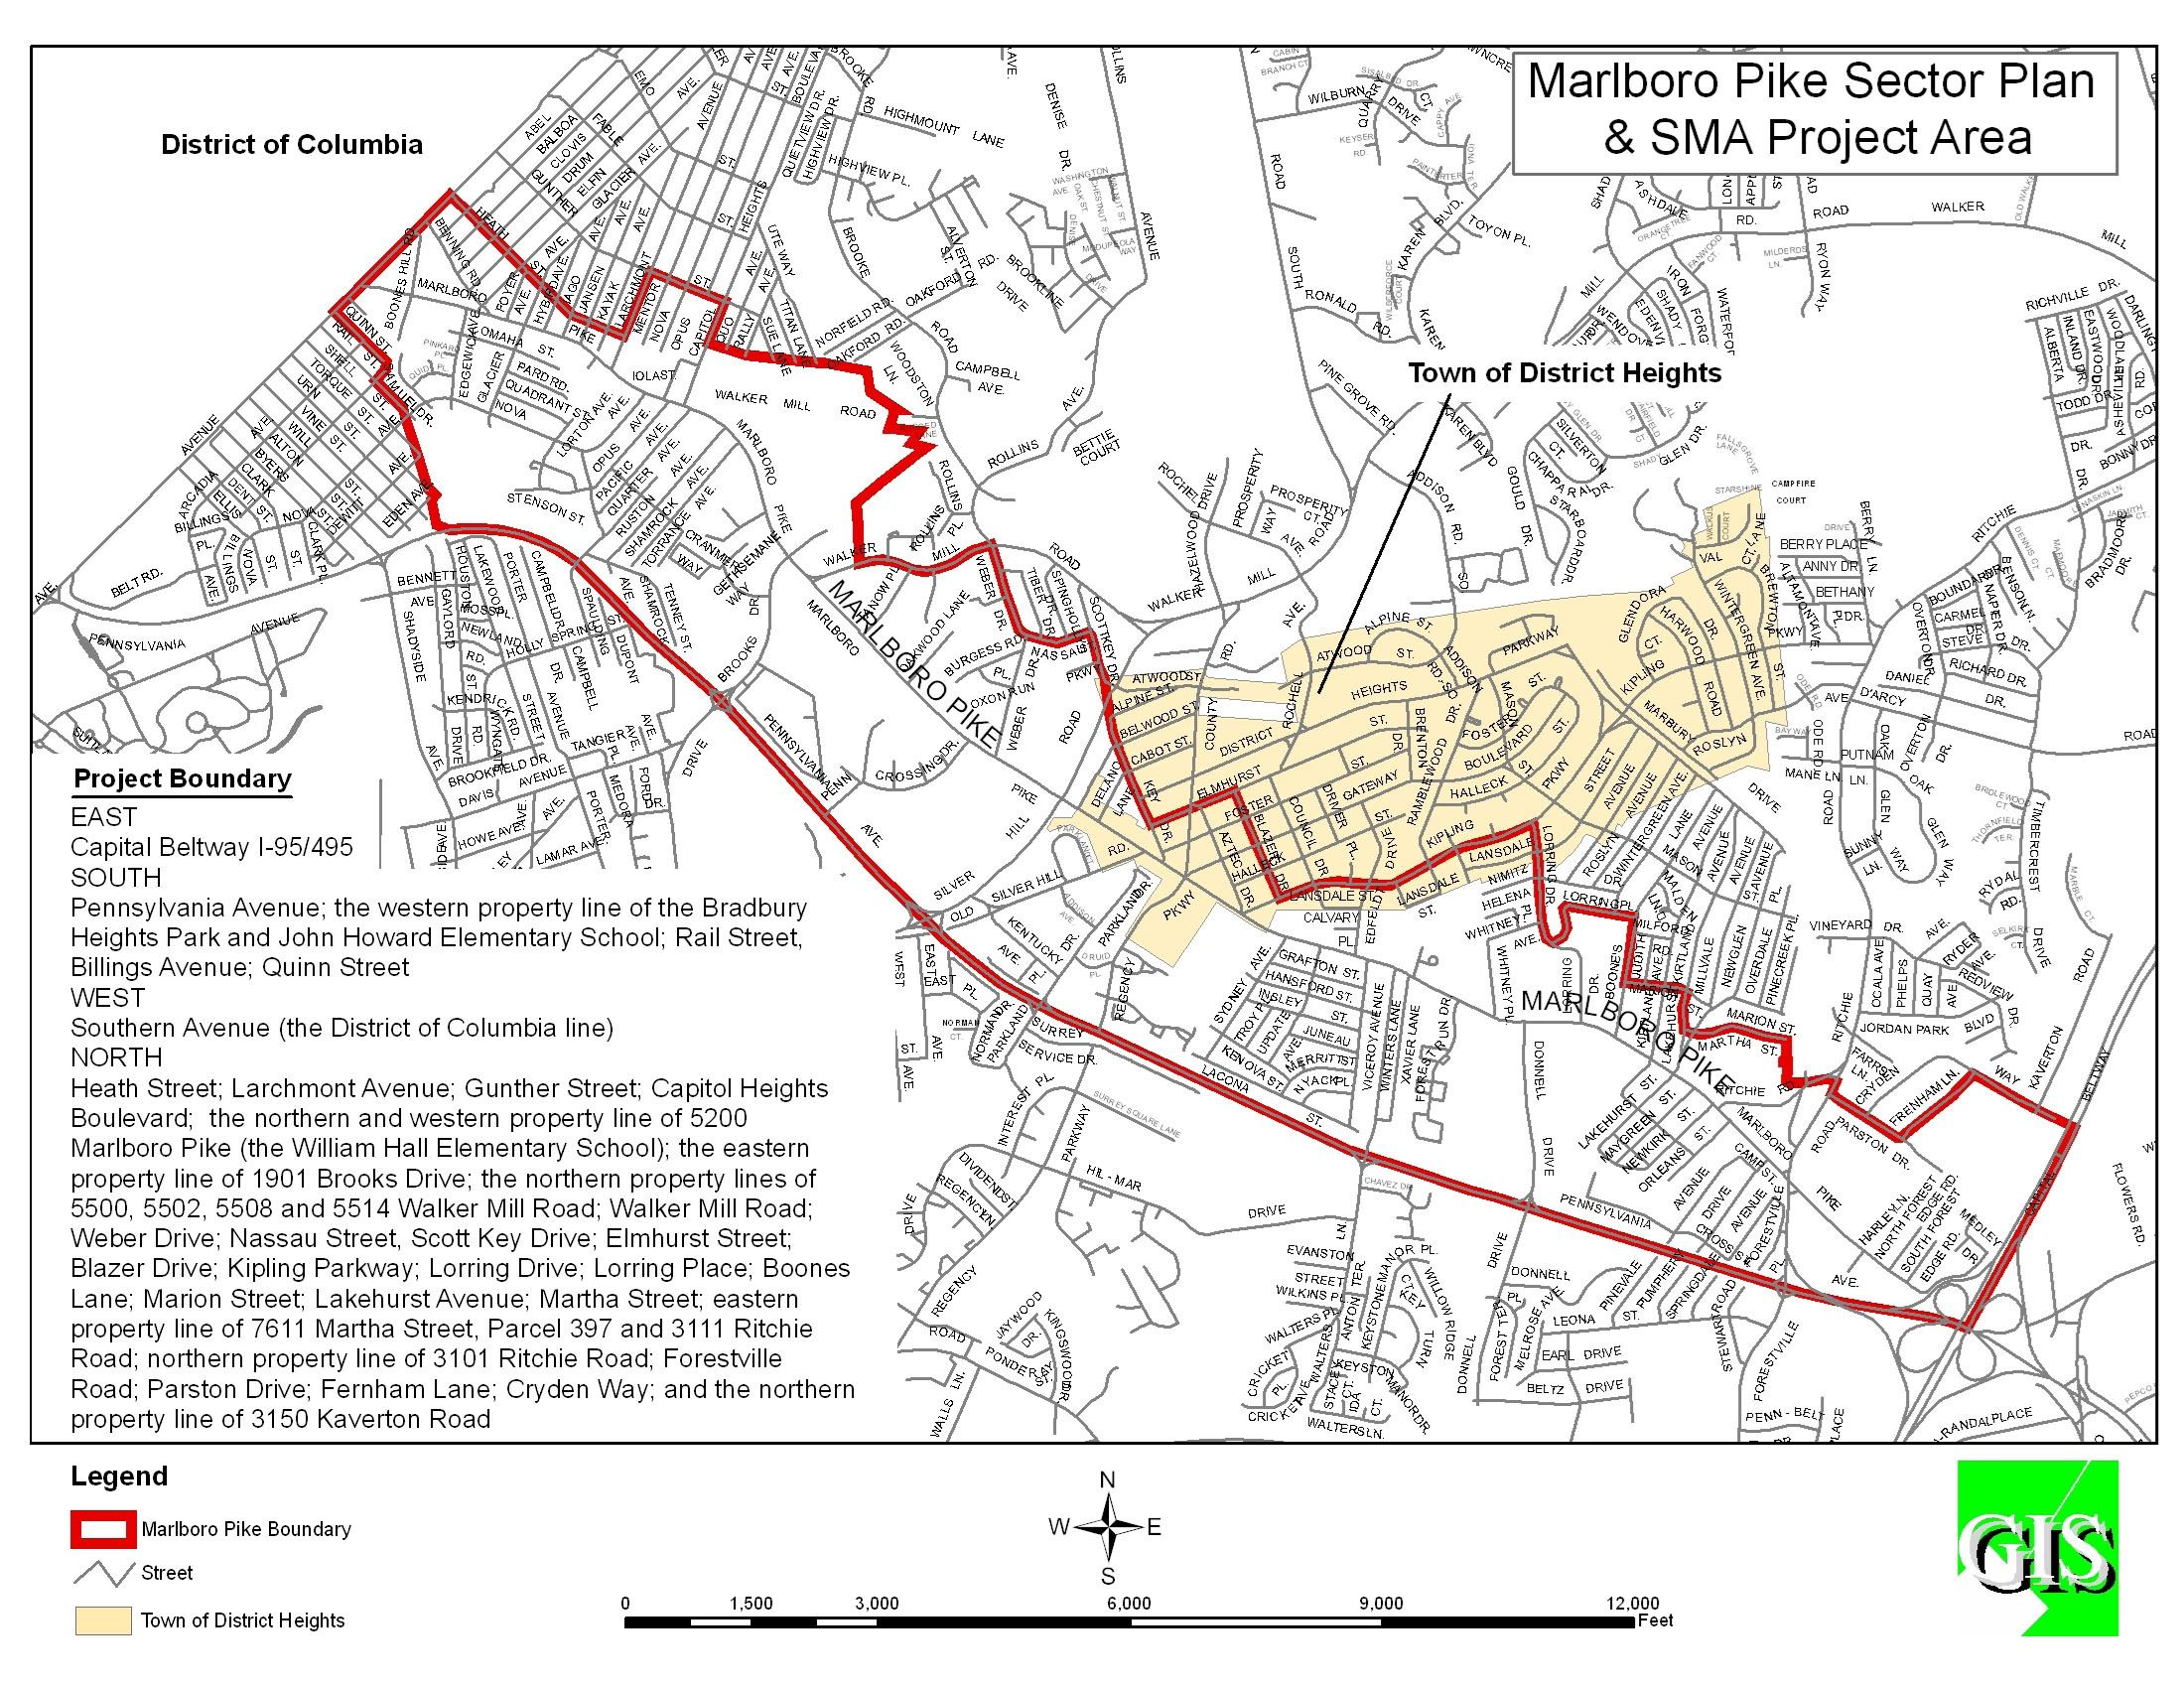 Marloboro Pike Sector Plan and SMA Project Area Map